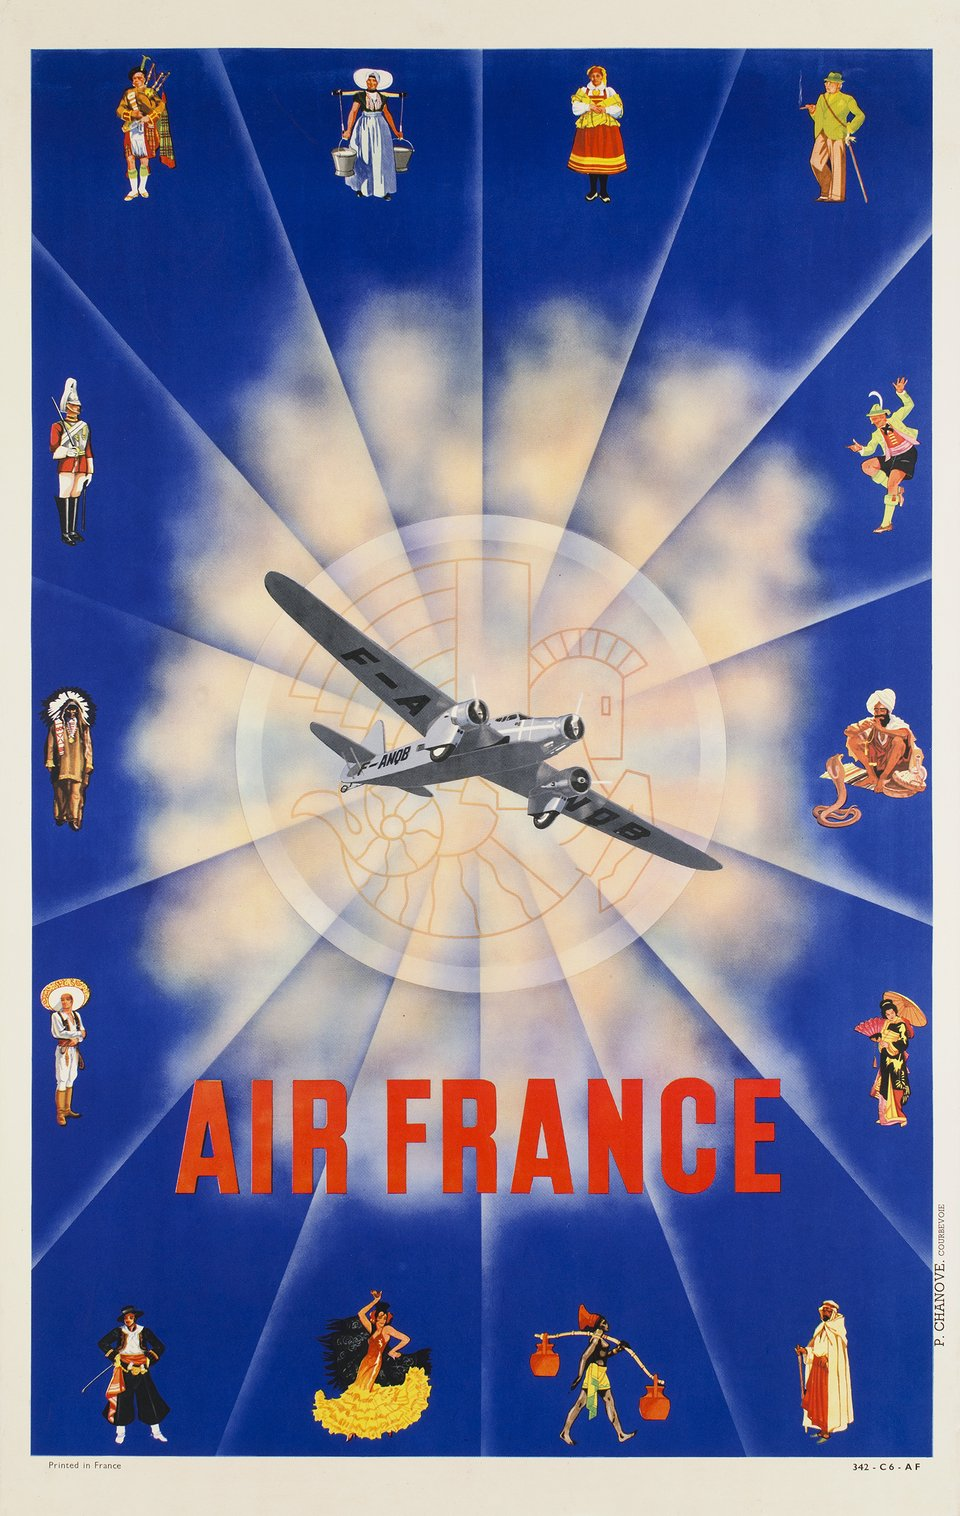 Air France – Affiche ancienne – GERAL, N. GERALD ALEXANDRE – 1937